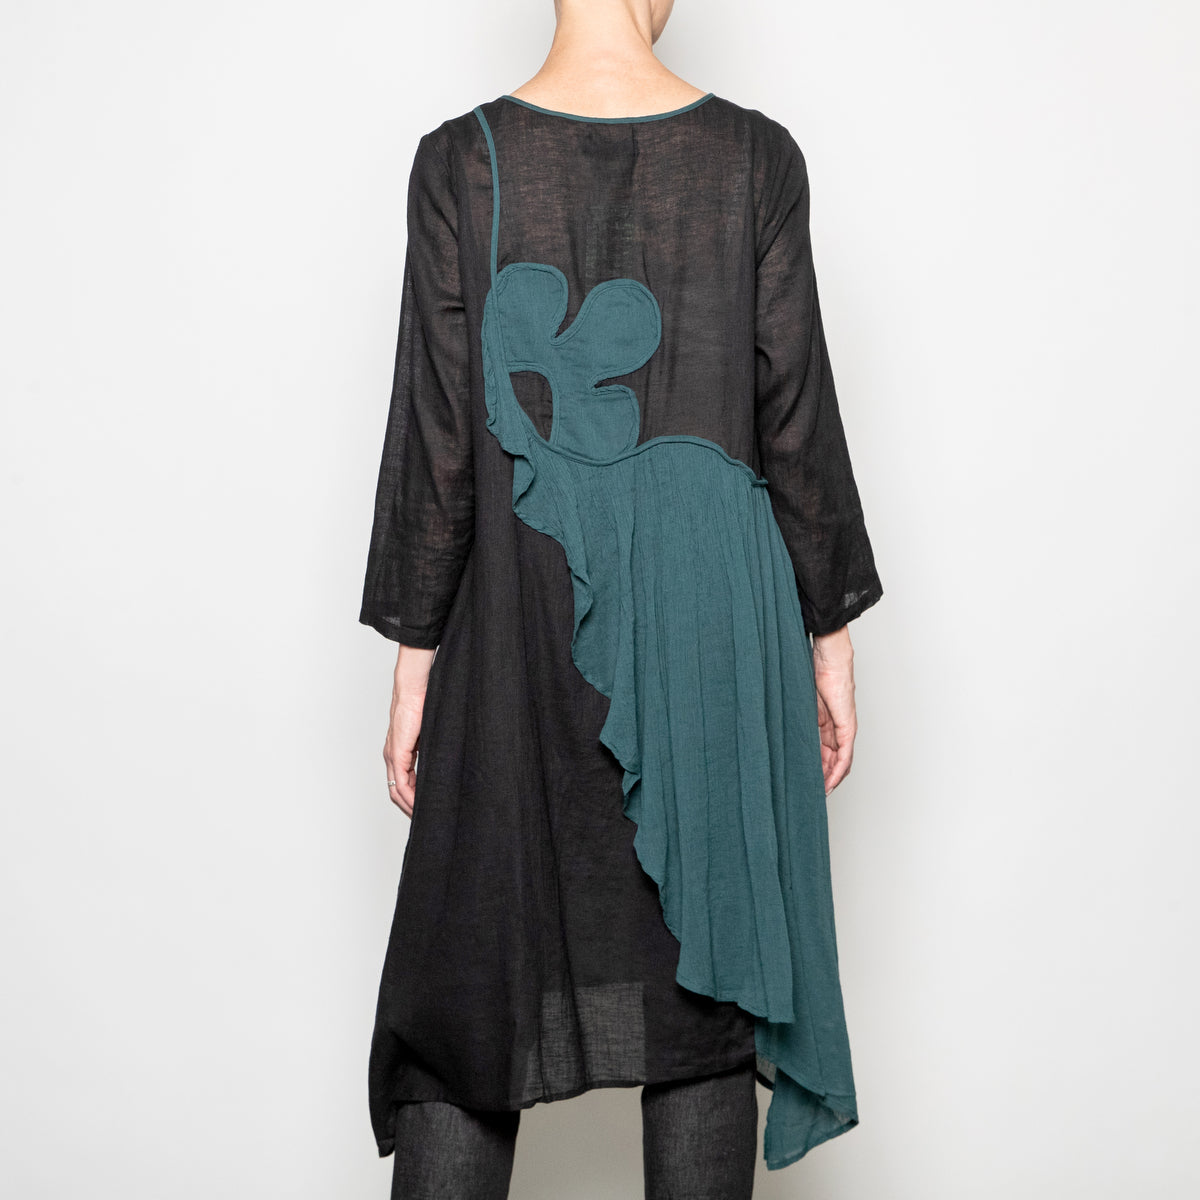 Peacock Ways Diana Tunic in Black